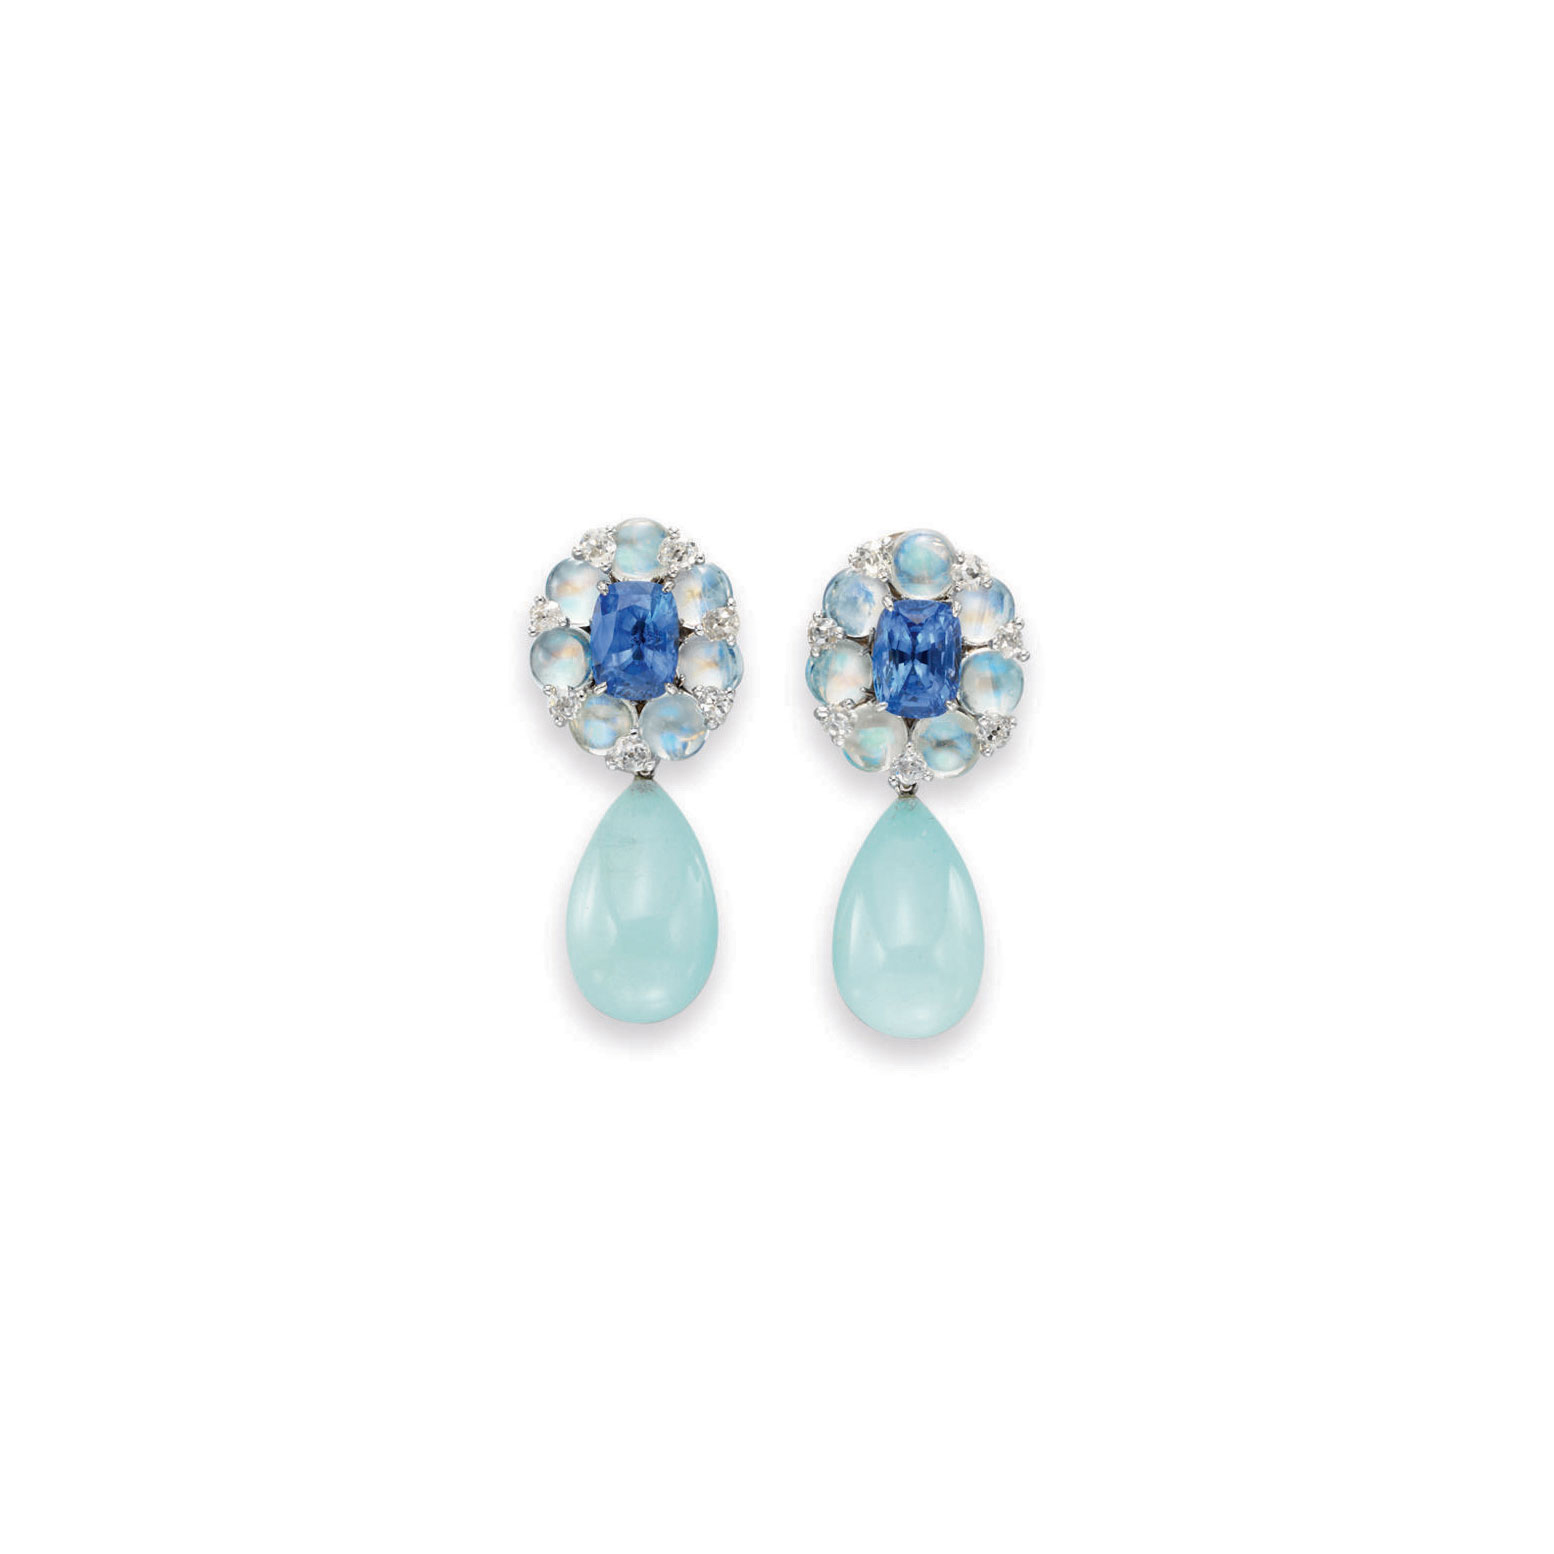 A PAIR OF DIAMOND, SAPPHIRE AND MOONSTONE EAR PENDANTS, BY TAFFIN